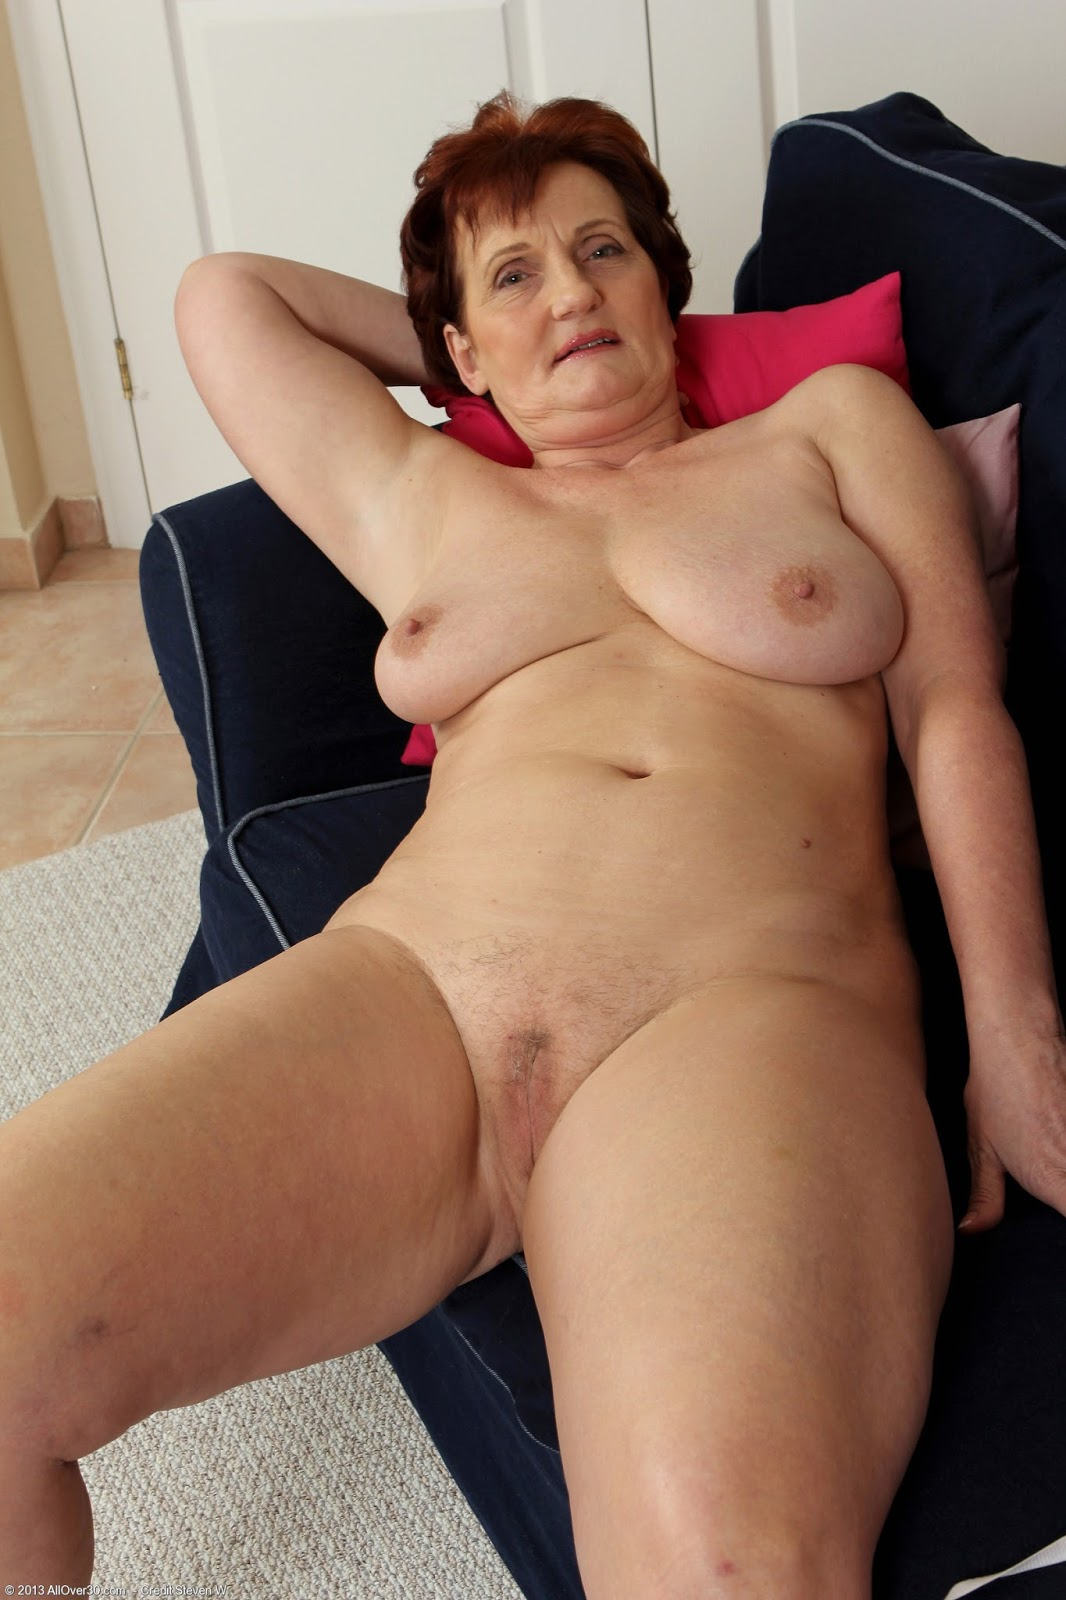 all nude image